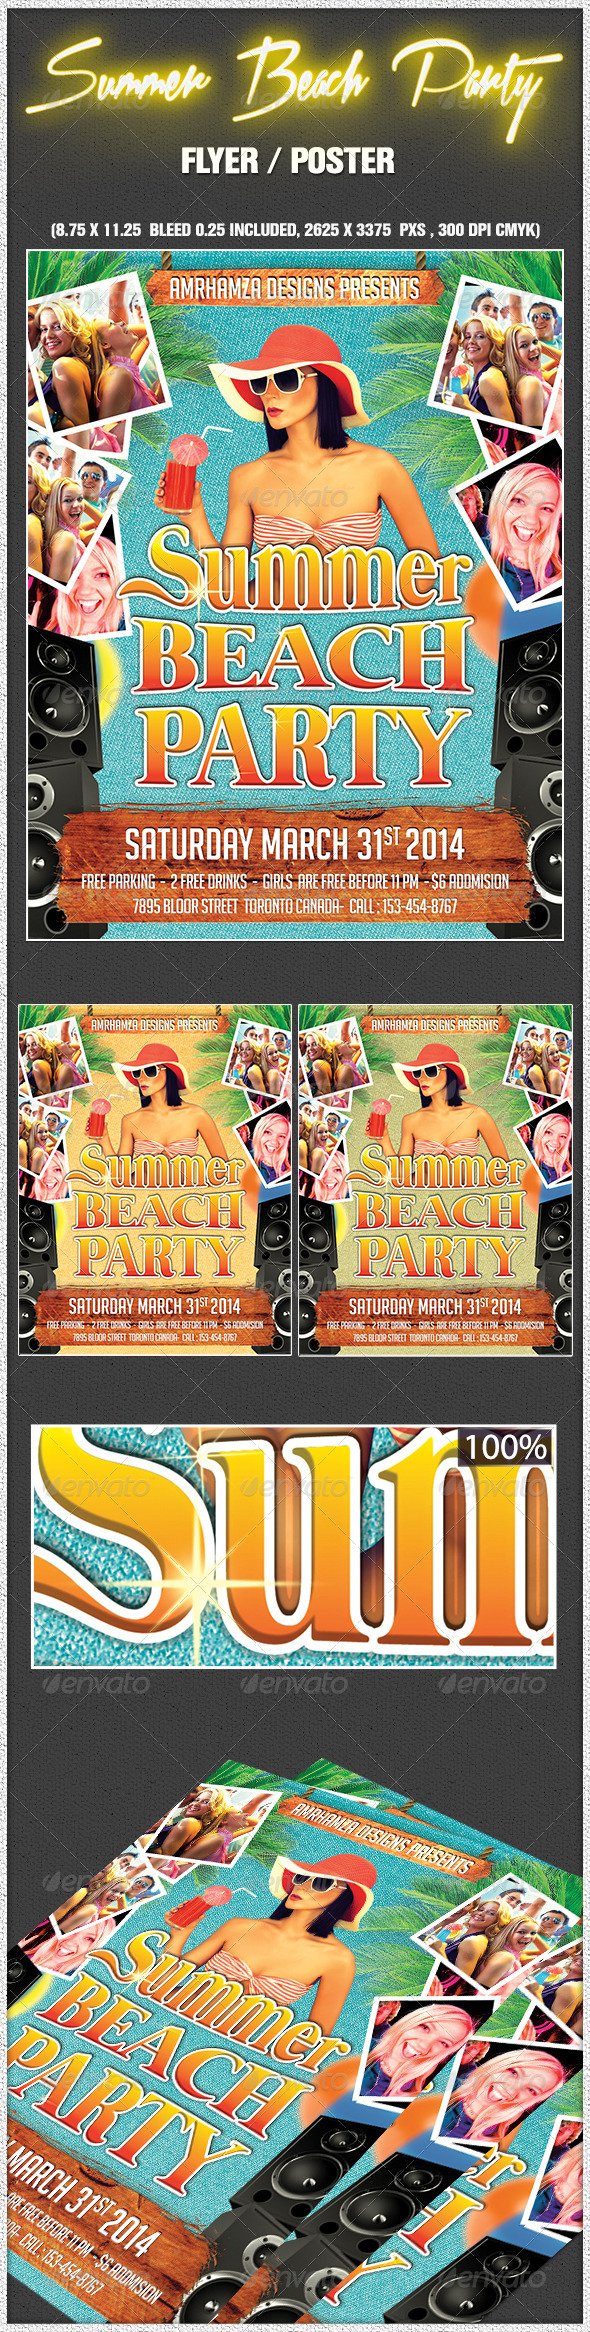 Summer Beach Party Flyer Poster - Clubs & Parties Events